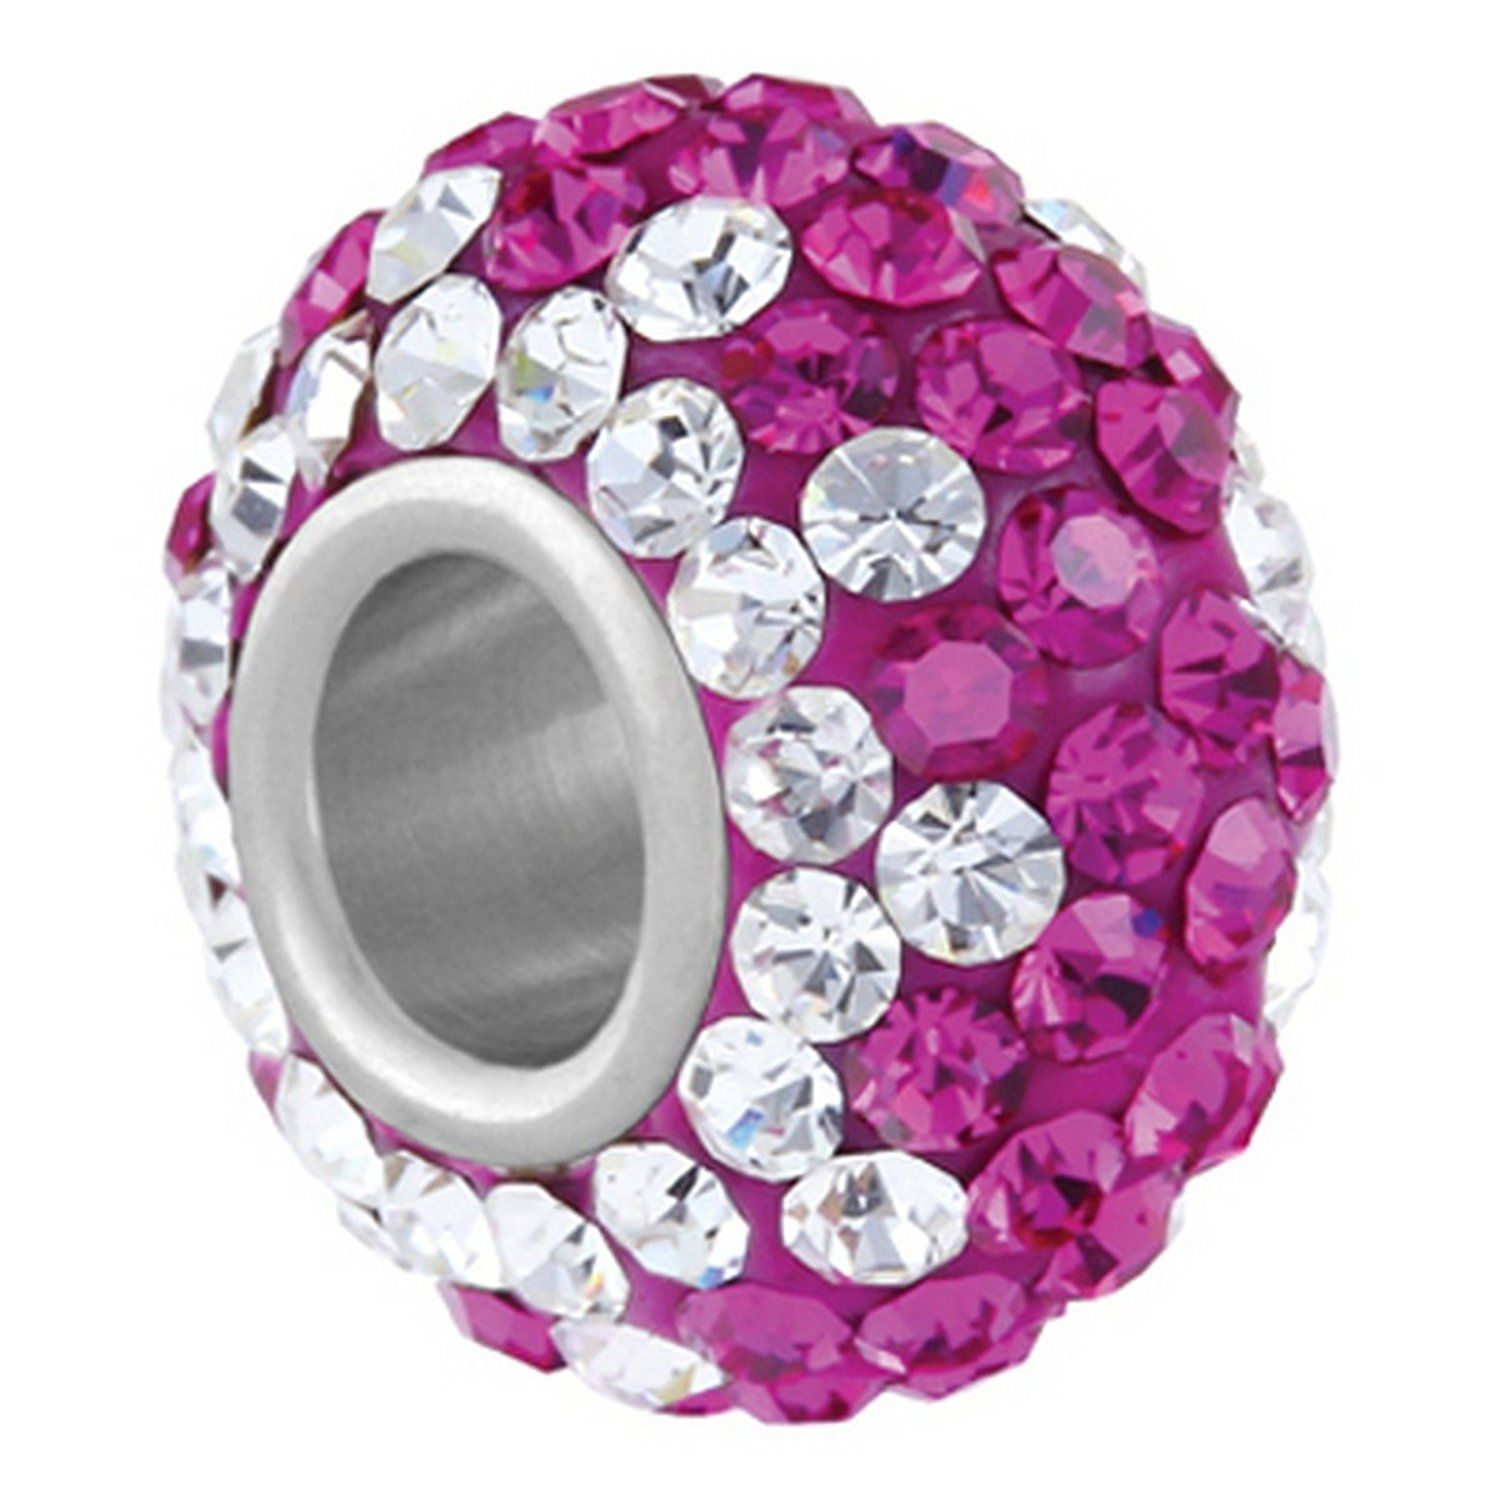 Fuchsia Tuxedo - Pandora Style Beads, Pandora Style Charms, Pandora Style Bracelets -- Startling review available here  : trend jewelry 2016